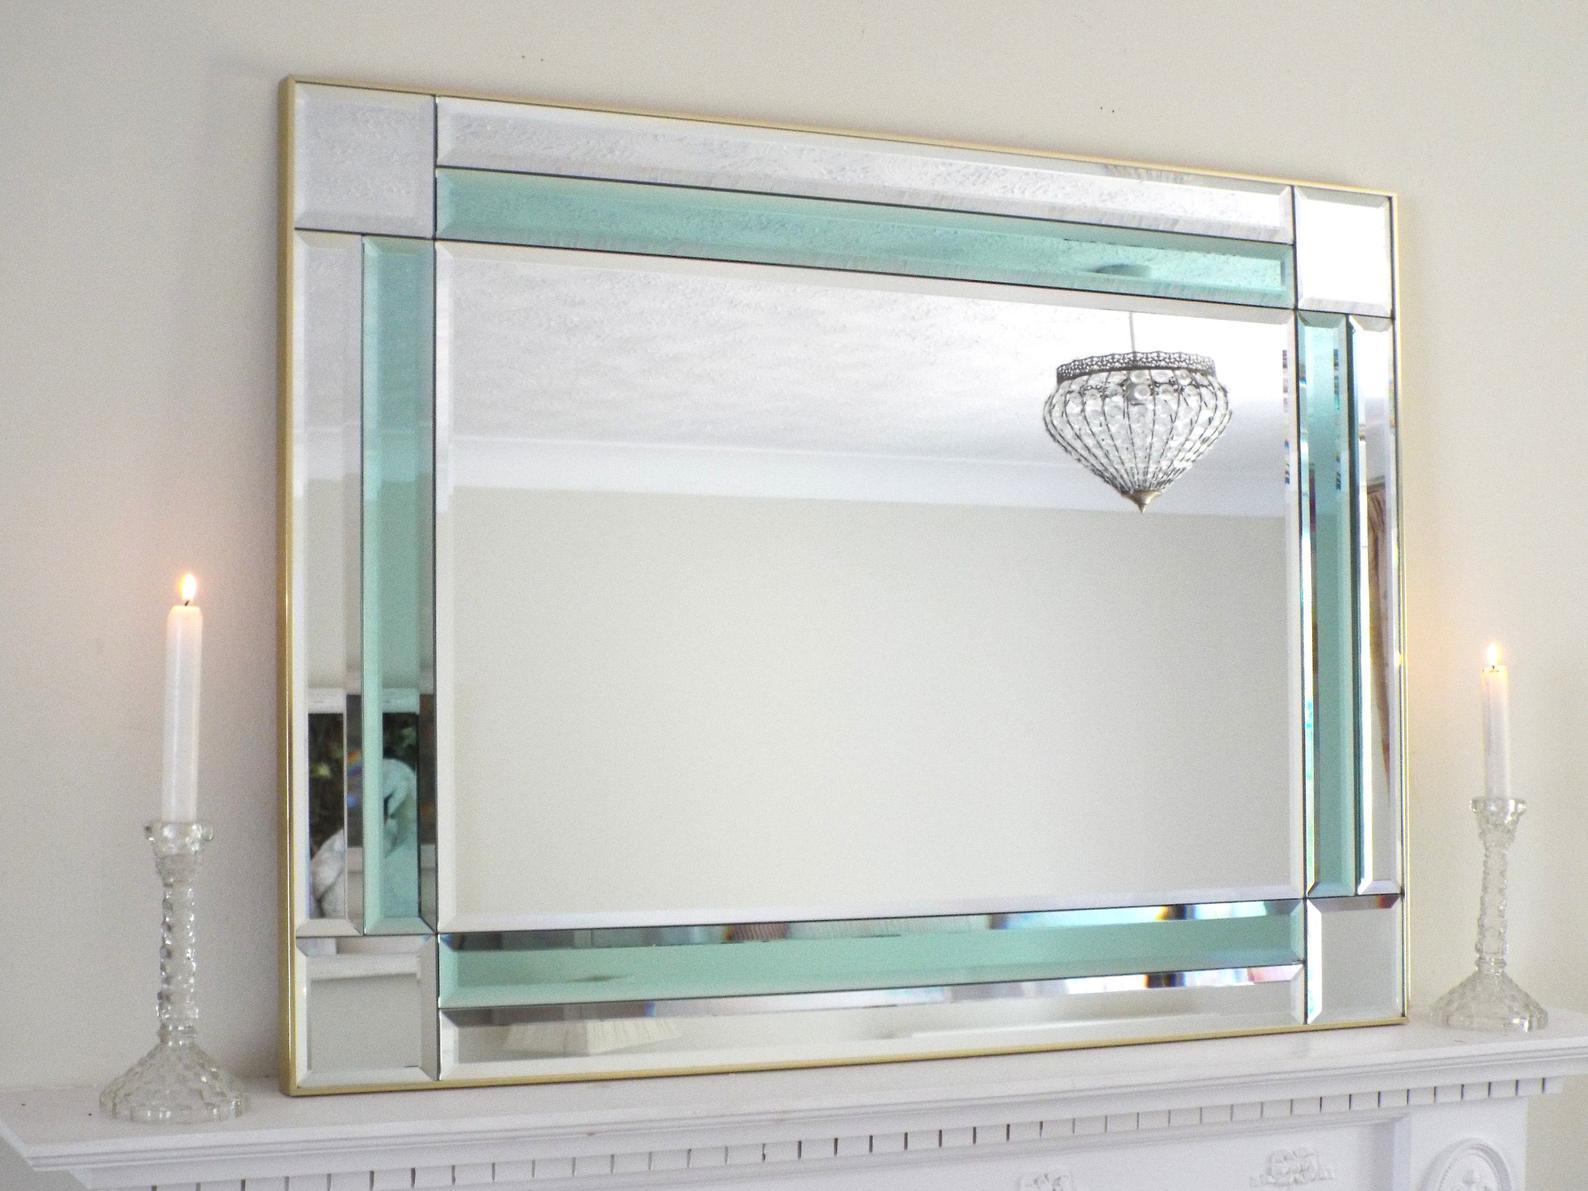 Art Deco Style Mirror Art Deco Style Mirror Teal Green Panel Mirror Colored Glass Mirror Large Hollywood Regency Style Mirror